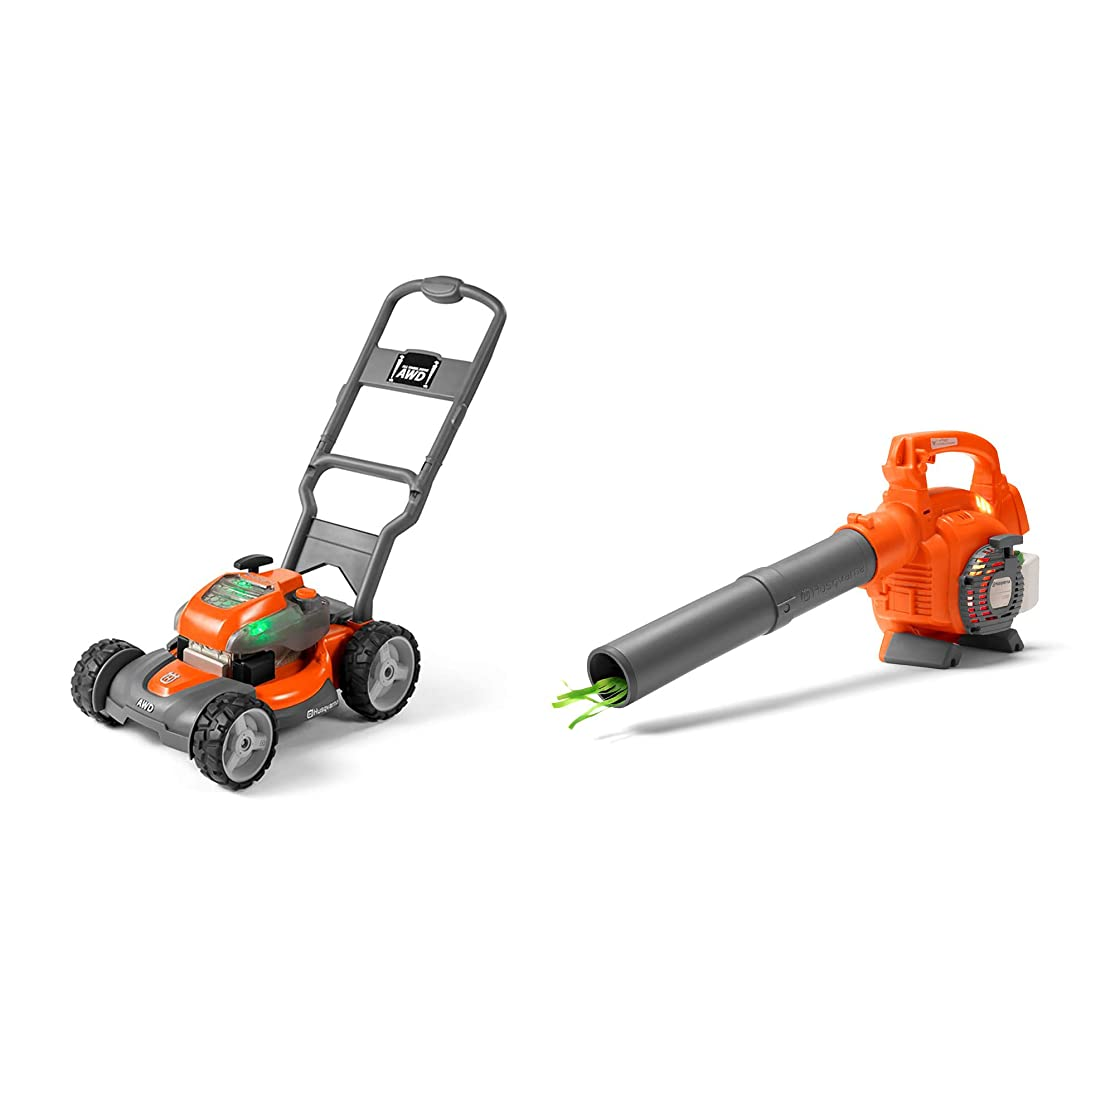 Husqvarna Battery Powered Kids Toy Lawn Mower + Toy Leaf Blower with Sounds hfphewit0